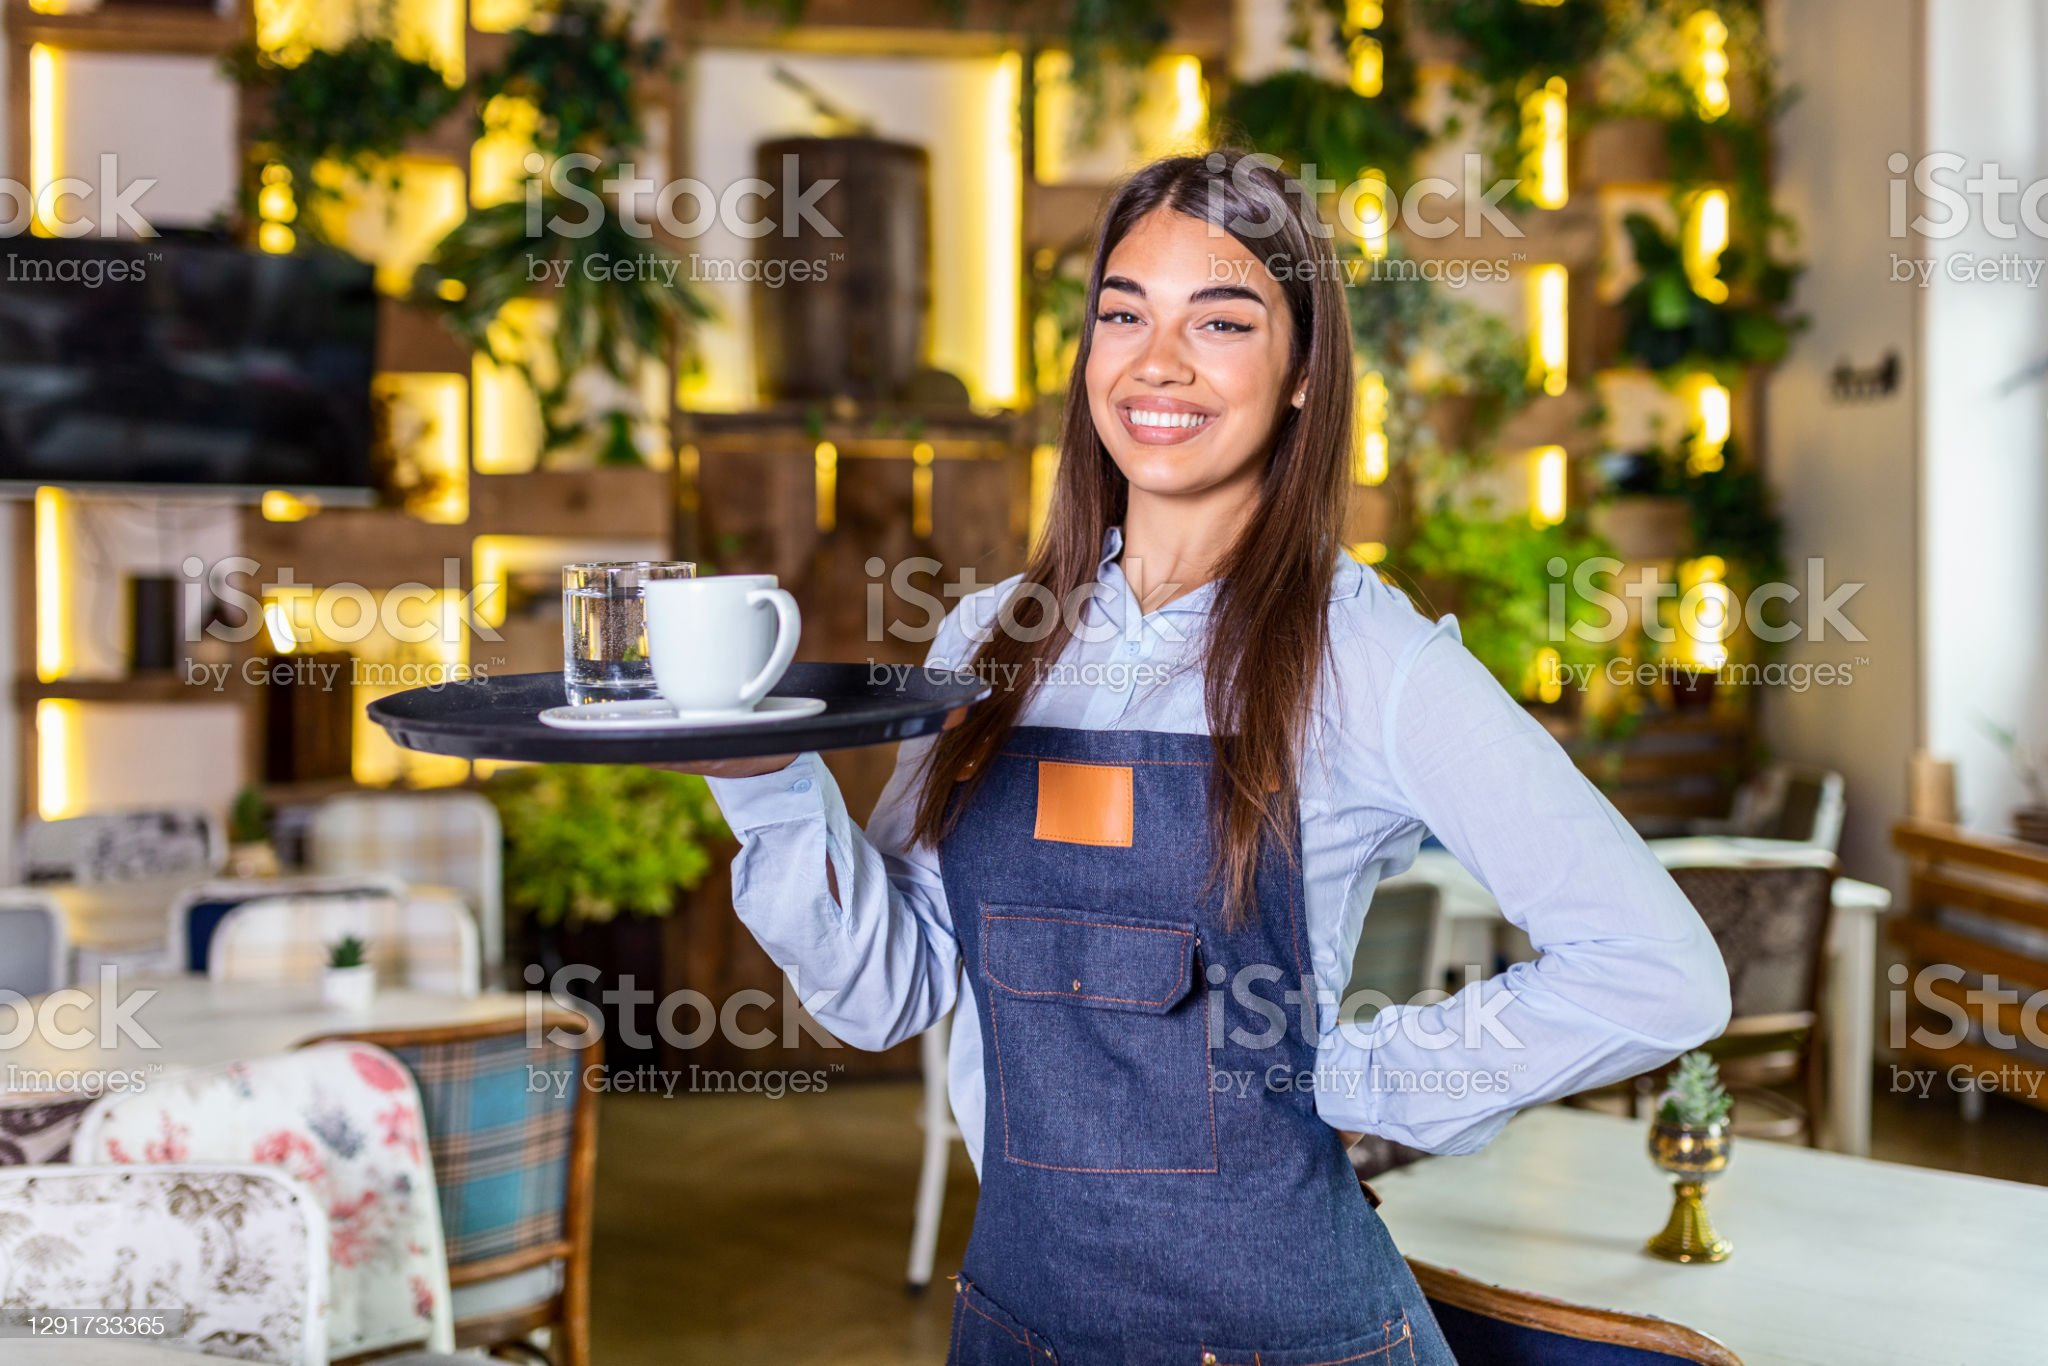 Mi cafetería. - Página 11 Young-woman-working-holding-a-tray-with-coffee-and-glass-of-water-picture-id1291733365?s=2048x2048